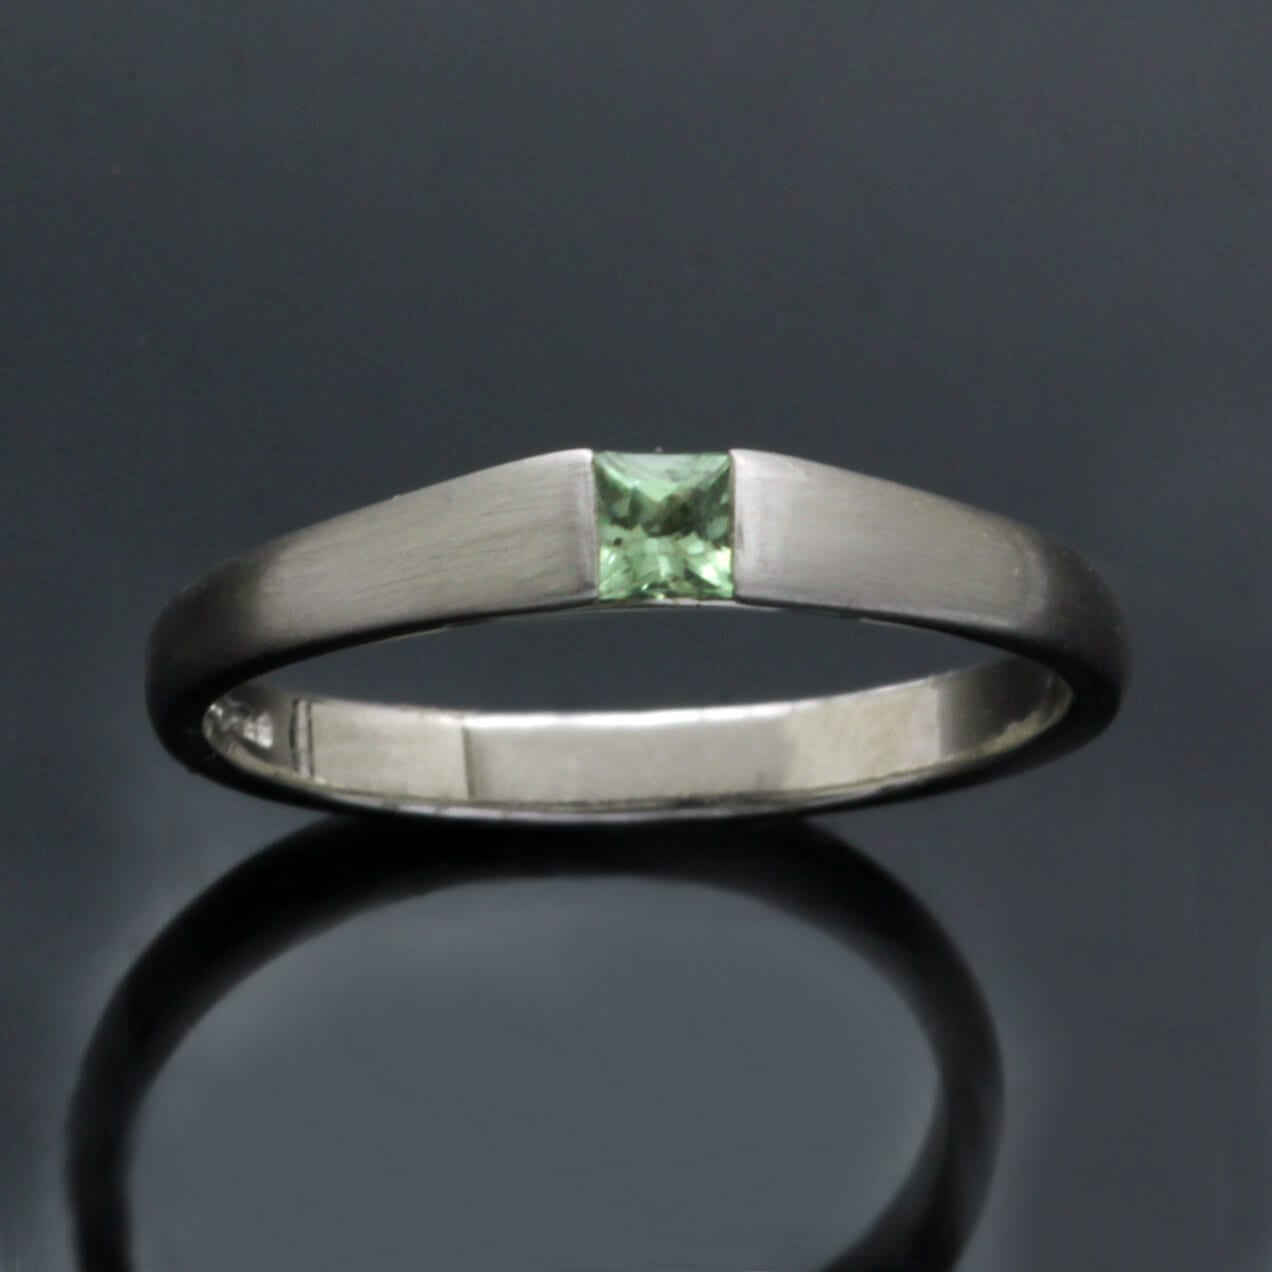 Handmade Green Sapphire and Platinum contemporary engagement ring